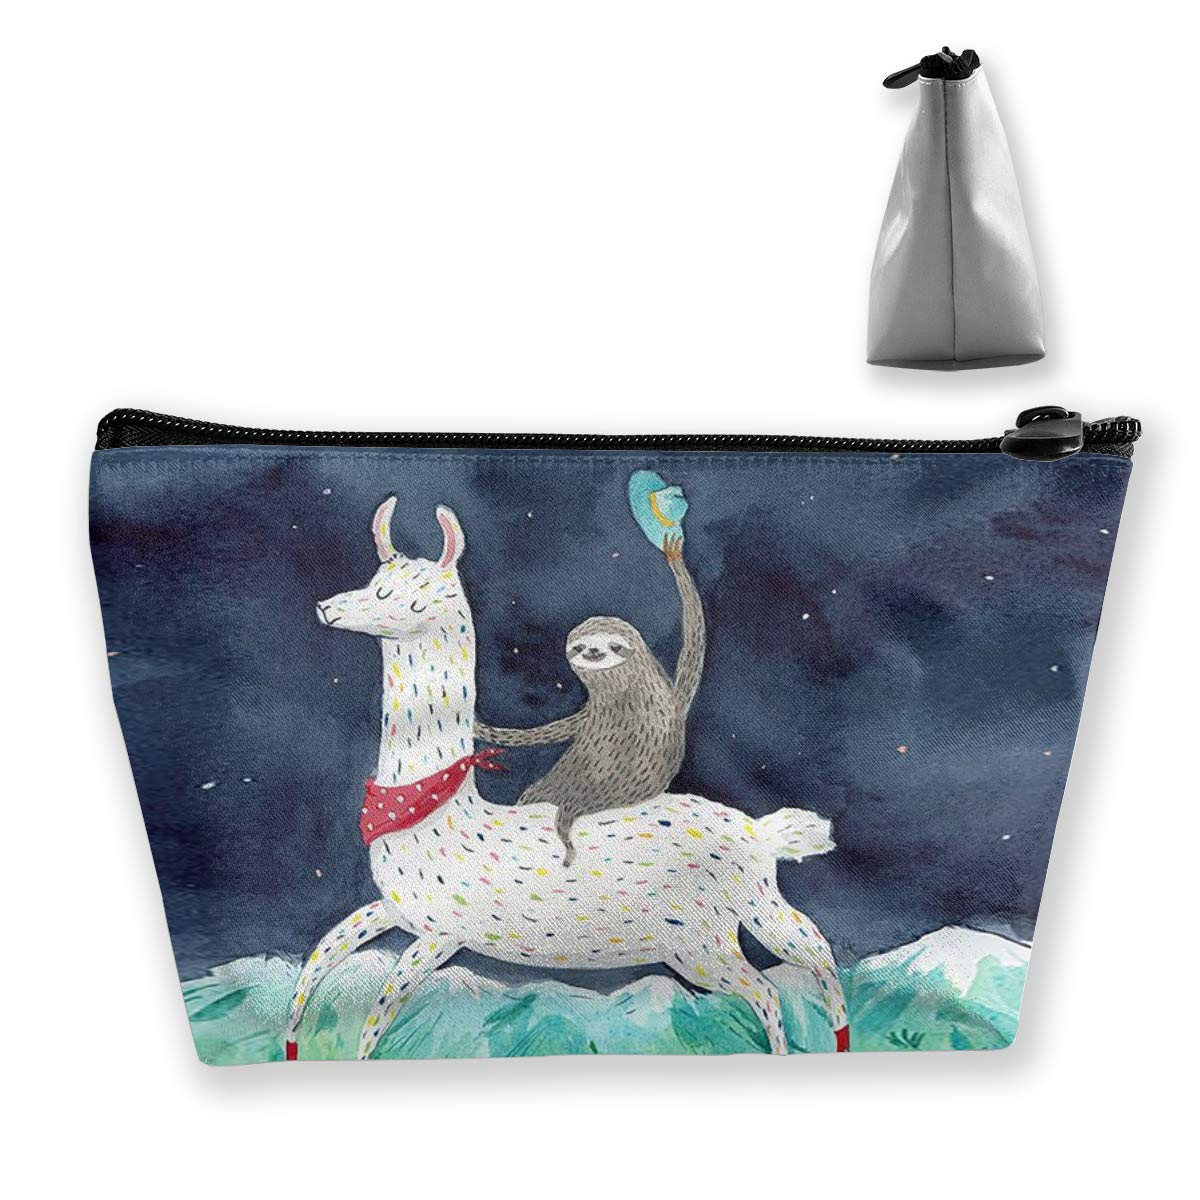 Women Sloth Riding Llama Painting Makeup Bag Cosmetic Bags Hand-held Toiletry Travel Organizer for Girl Cosmetics Make Up Tools Toiletries